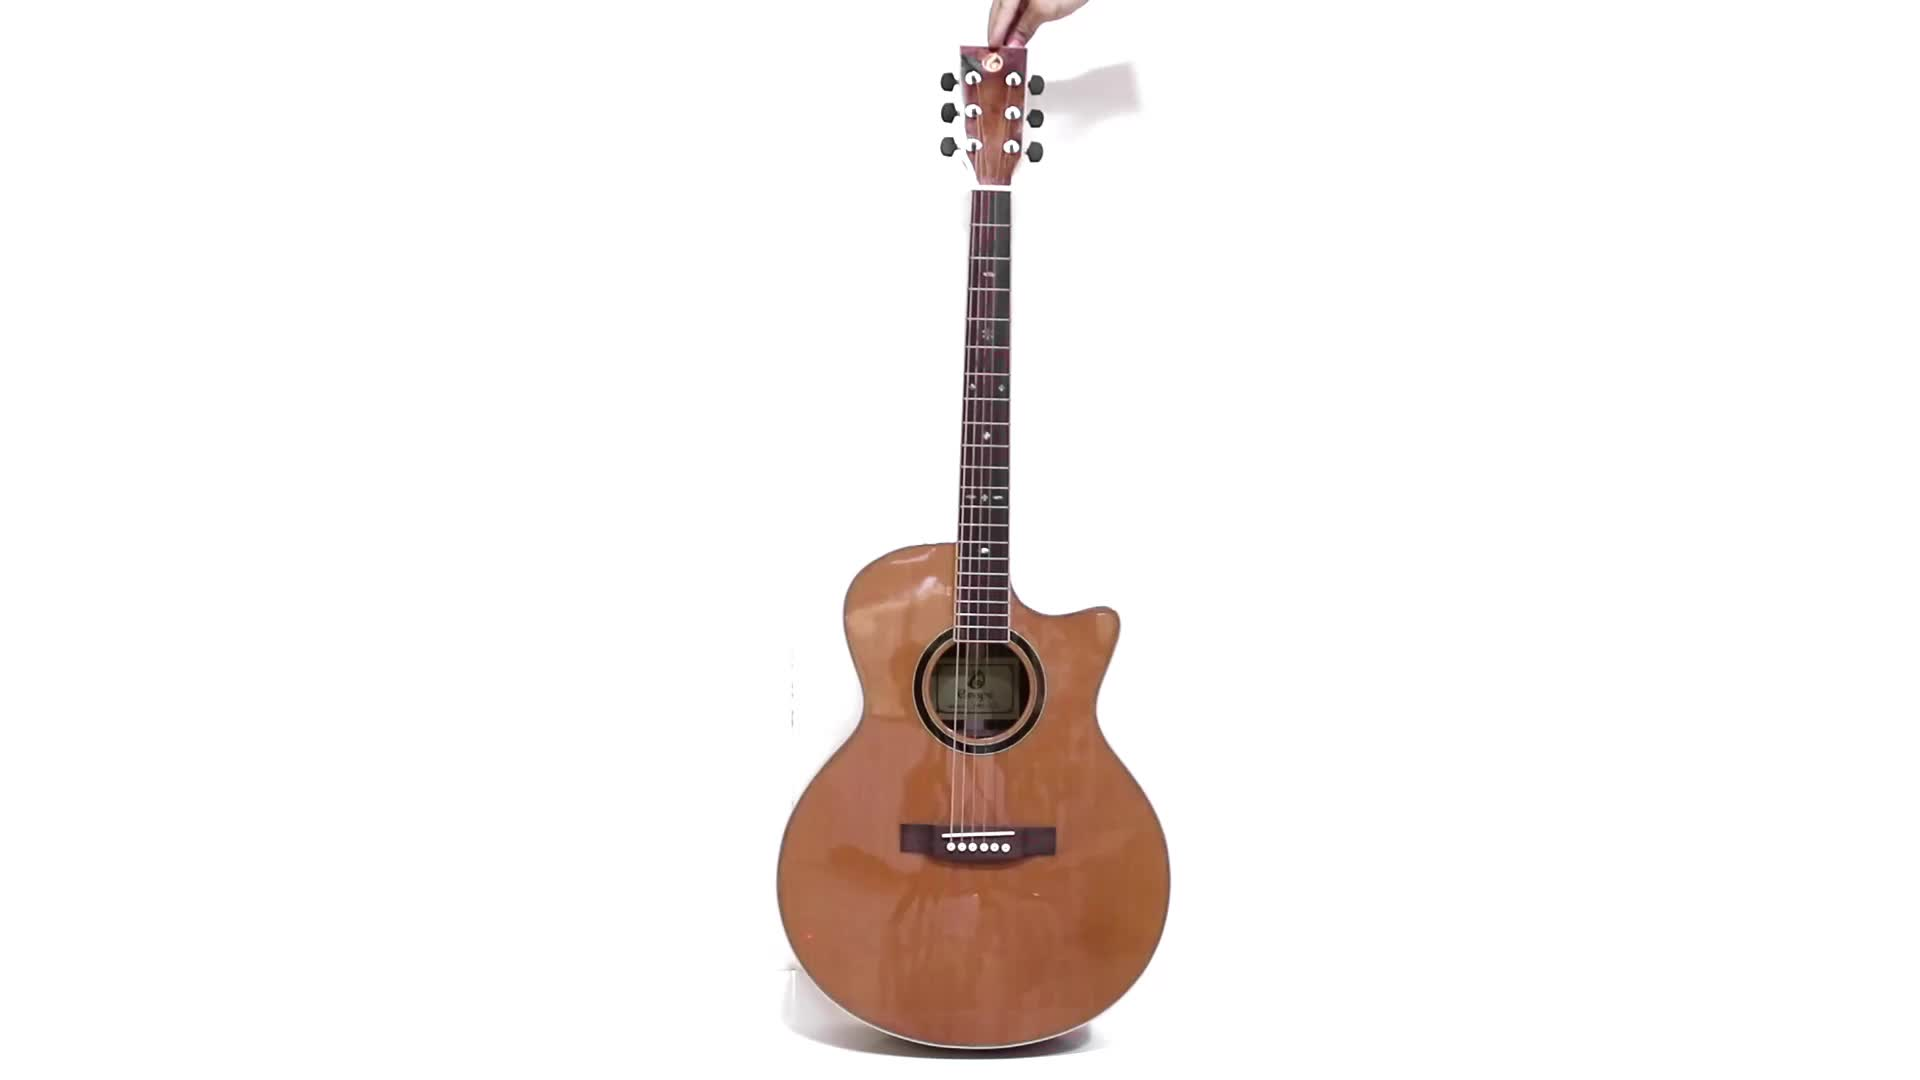 41 Quot High Grade Best Value Solid Wooden Acoustic Guitar For